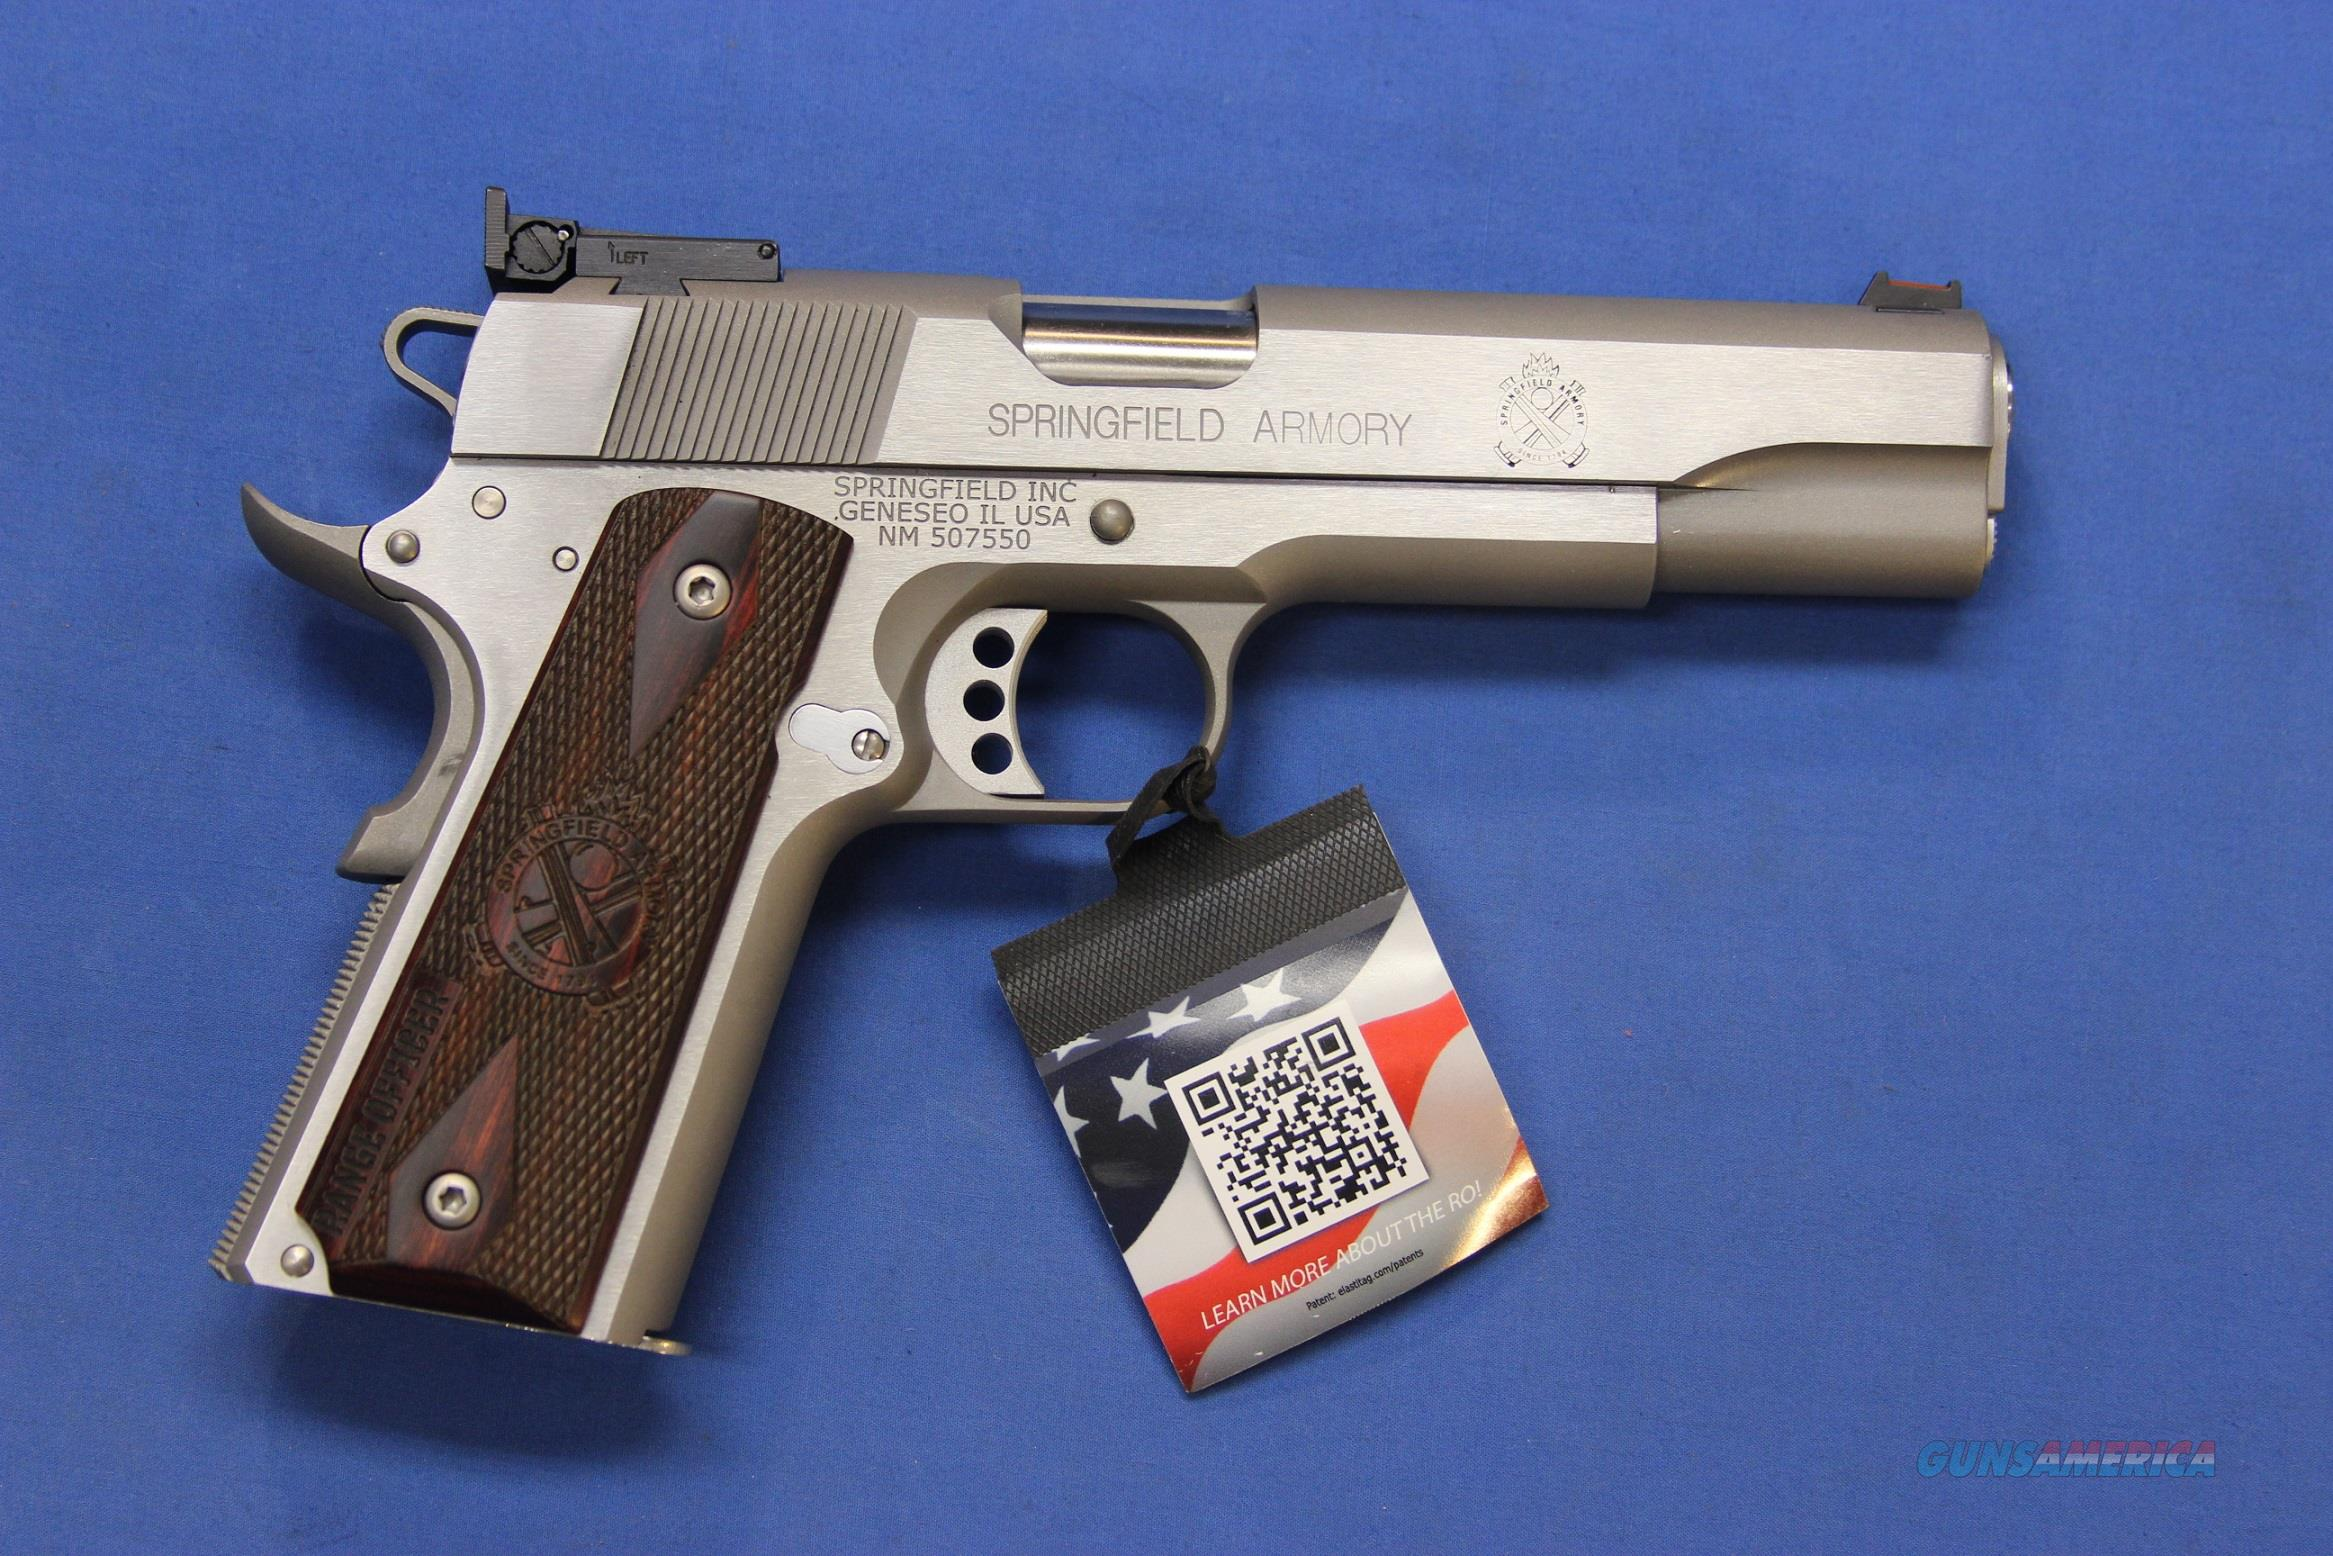 SPRINGFIELD 1911 RANGE OFFICER STAINLESS 9mm - NEW  Guns > Pistols > Springfield Armory Pistols > 1911 Type